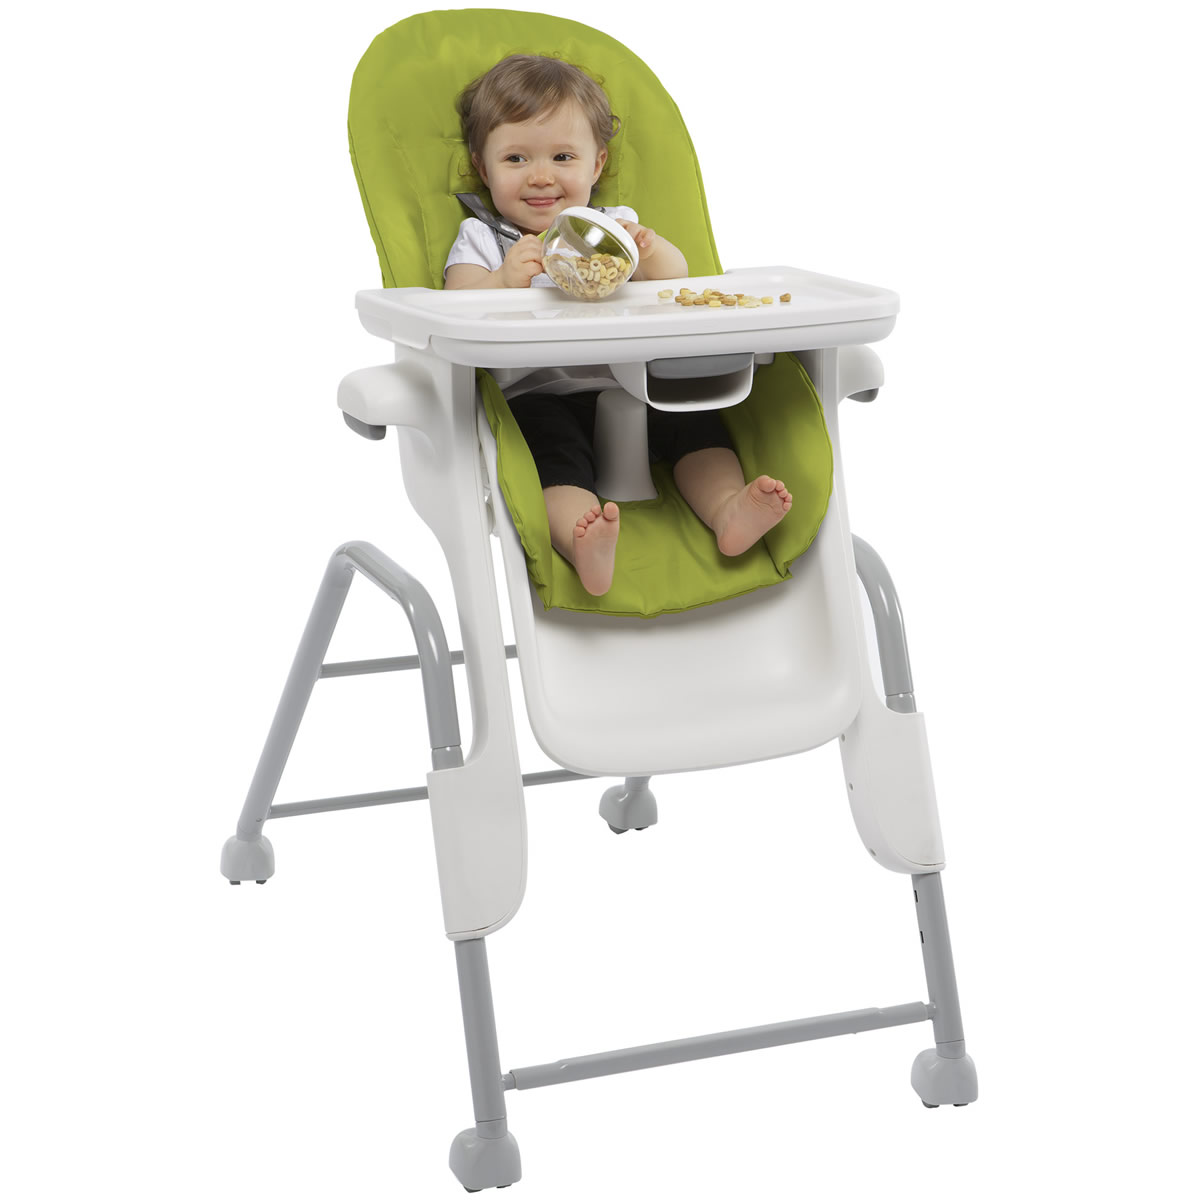 albee baby high chair cover and sash hire birmingham oxo tot seedling green